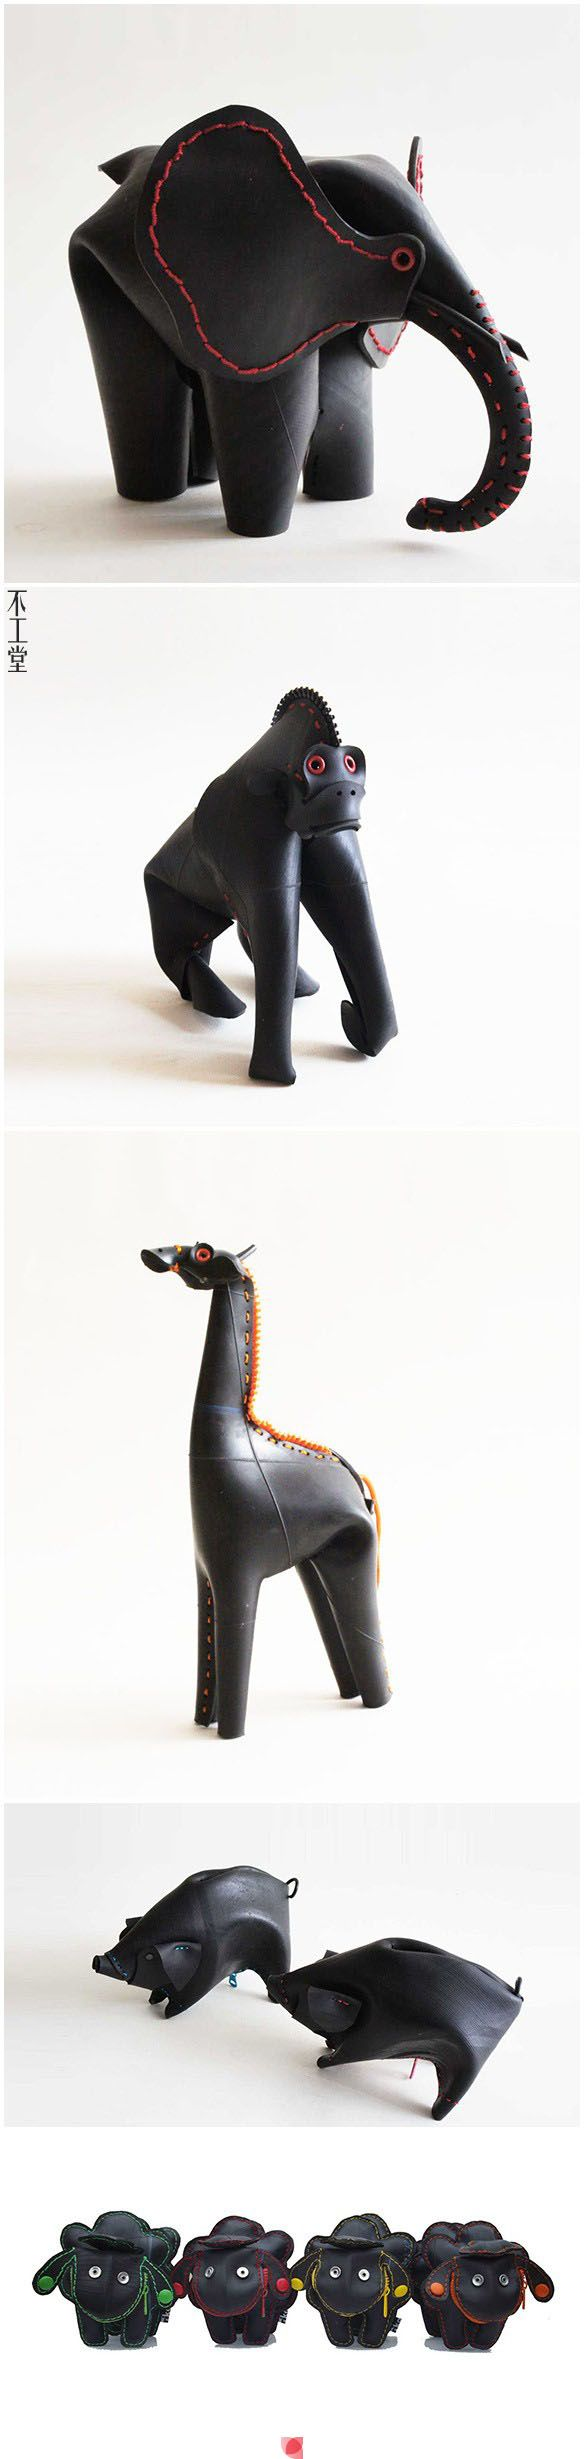 Upcycled bike tube animals. Been thinking about making something like this, glad to see someone's already doing it!